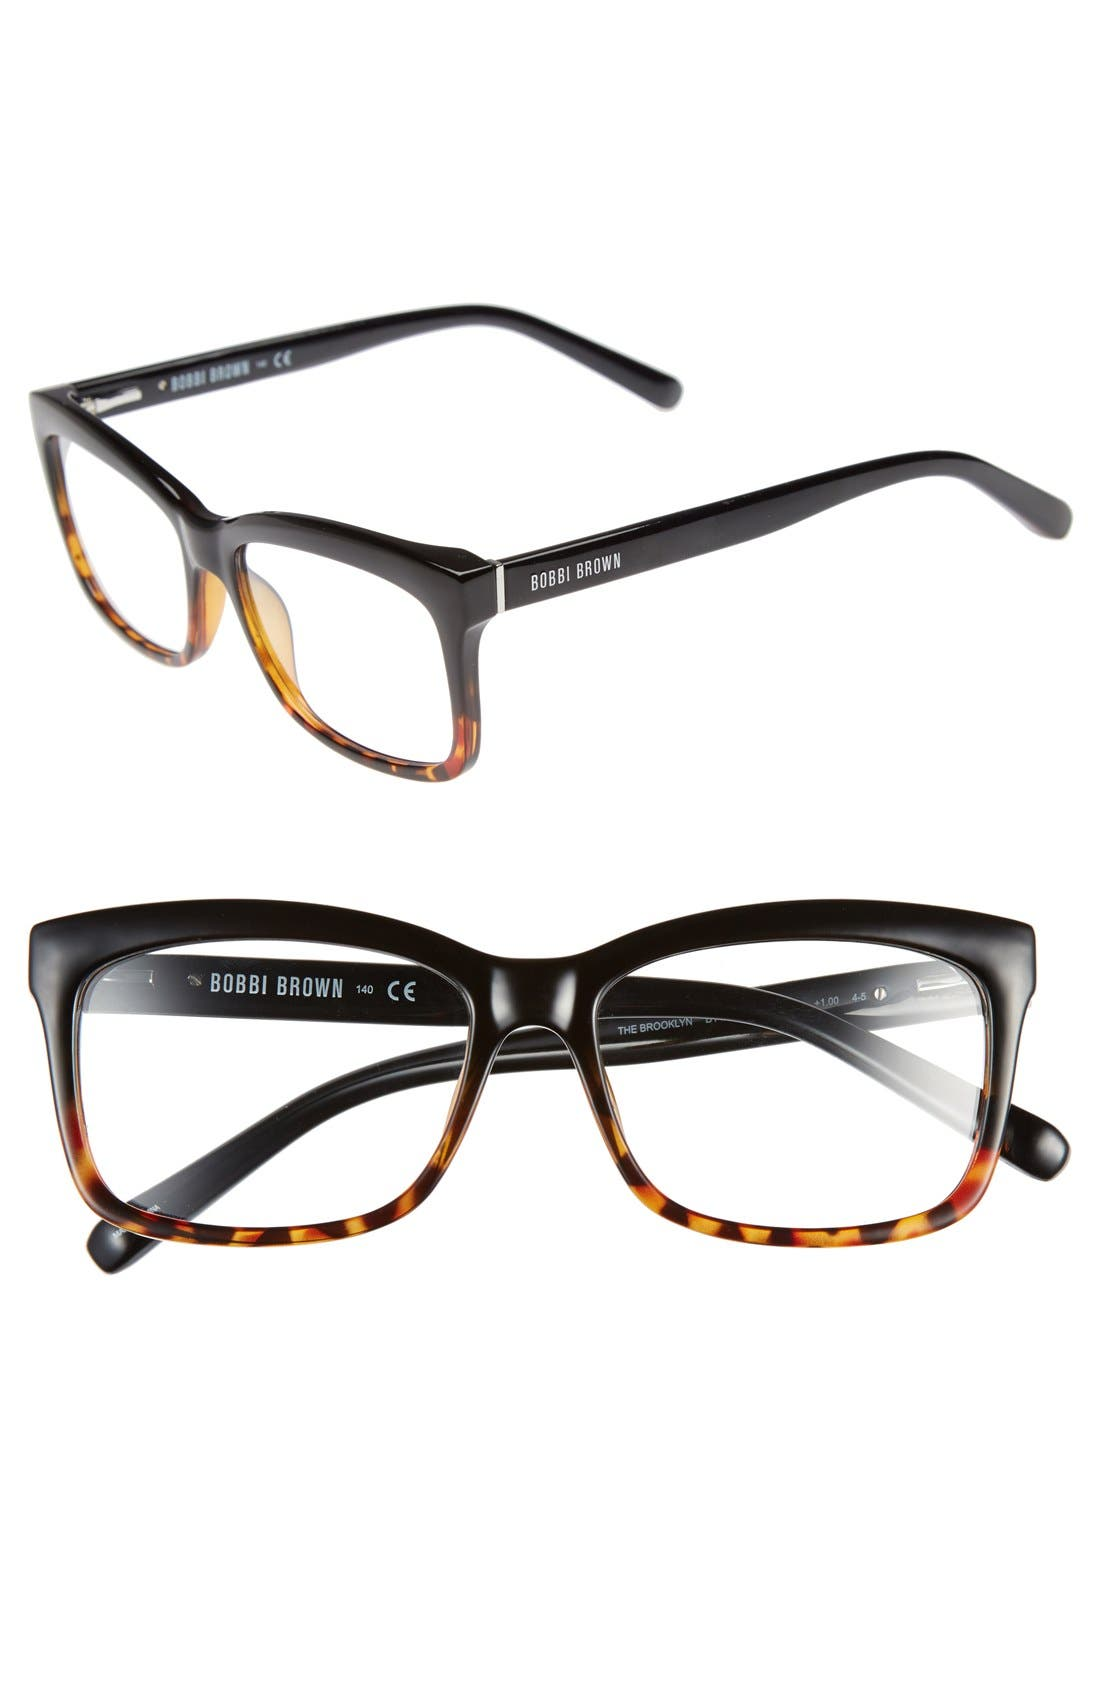 Bobbi Brown The Brooklyn 53mm Reading Glasses (2 for $88)